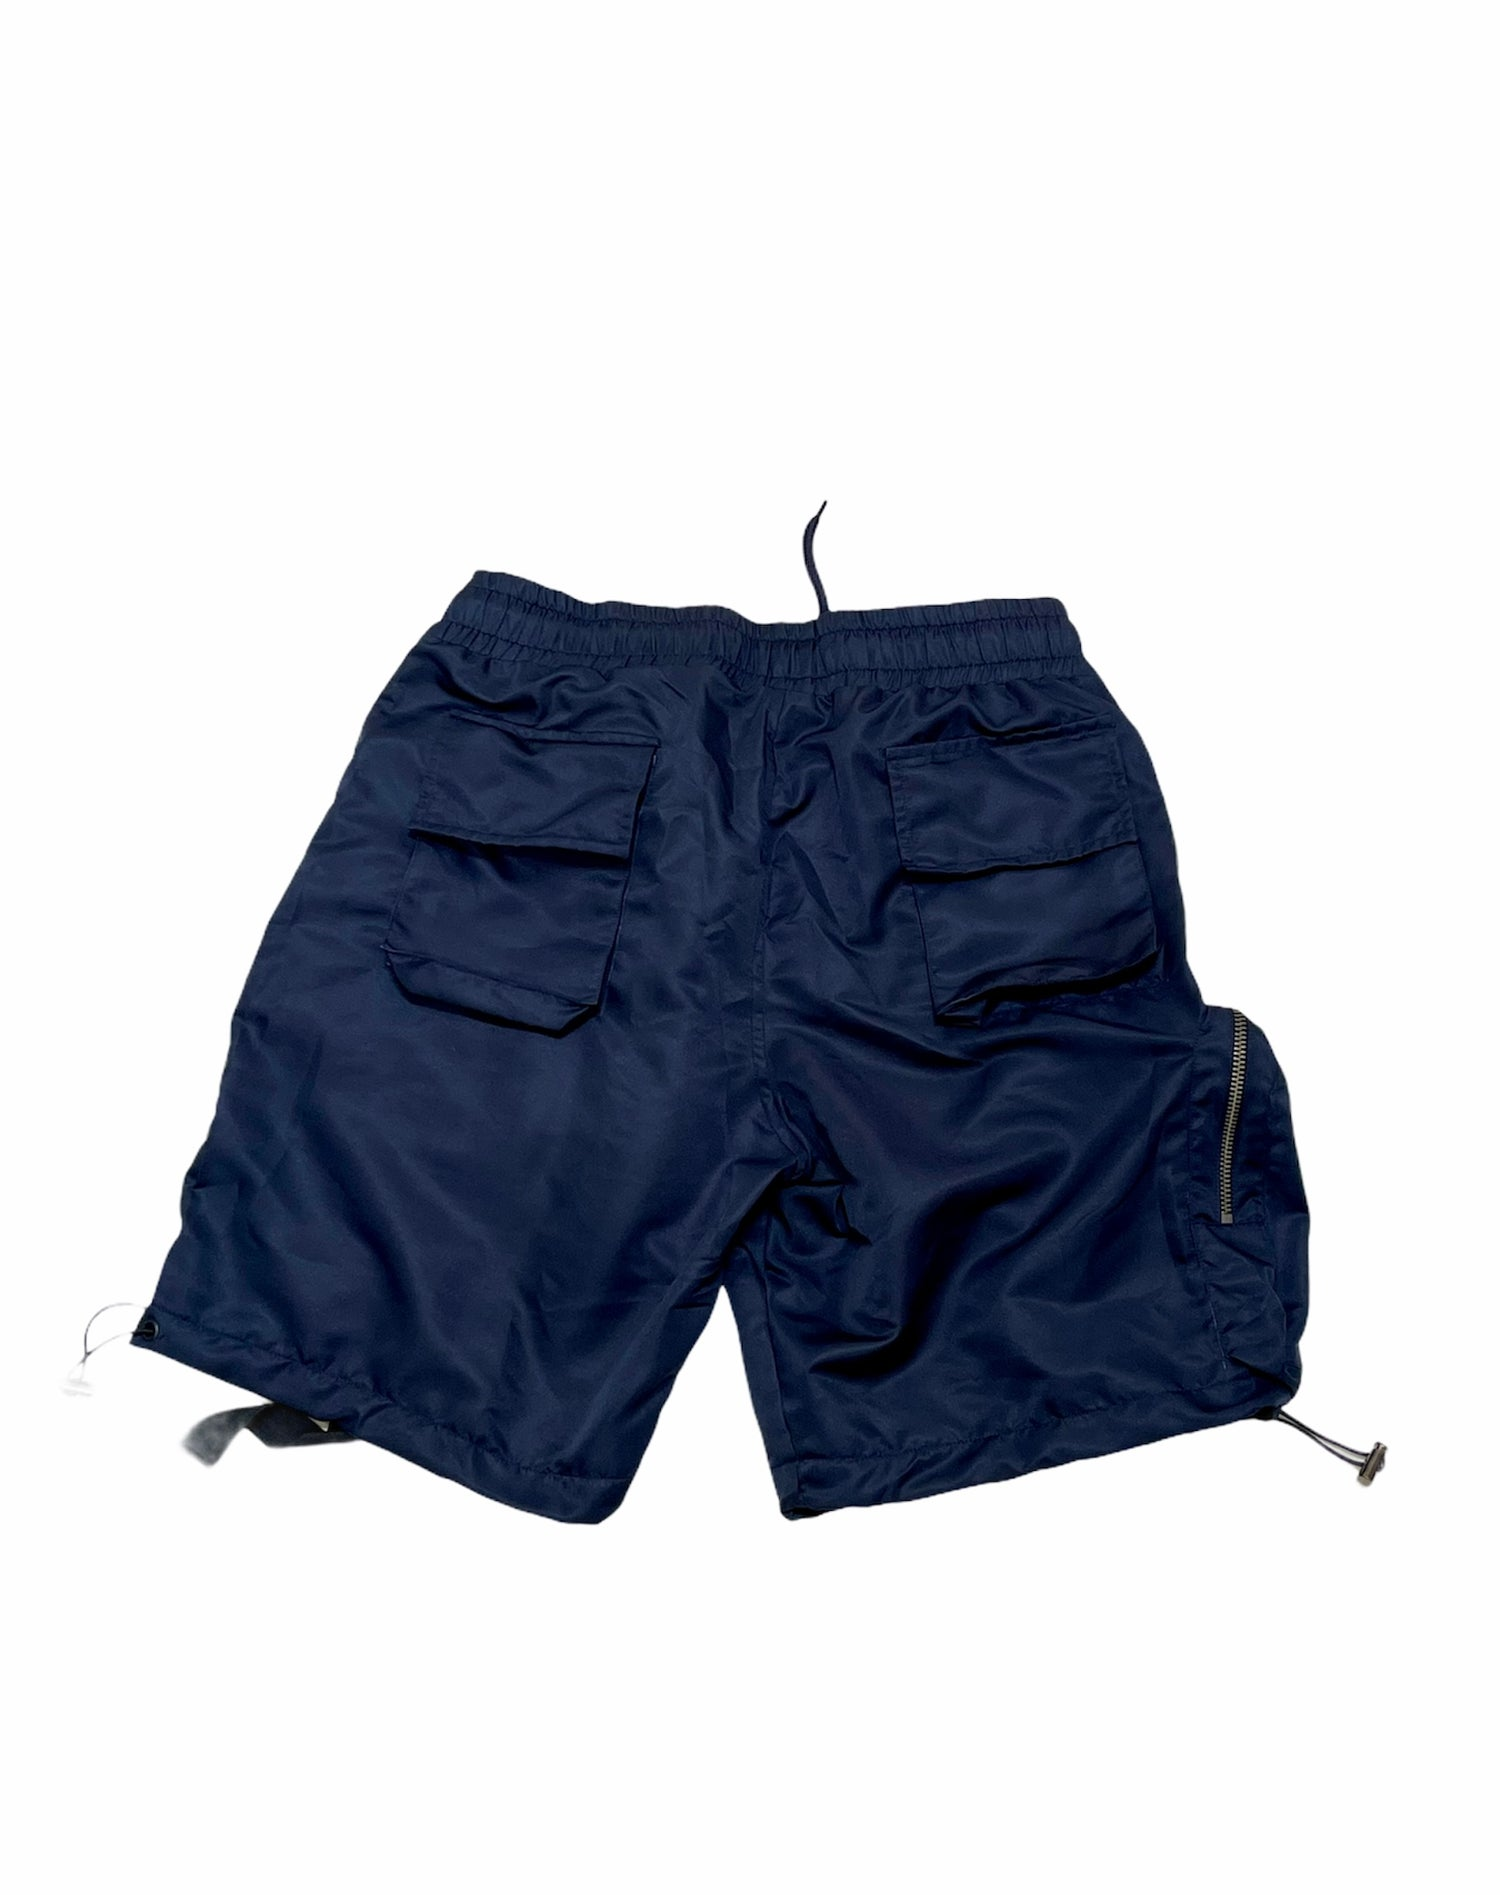 Image of Navy Wave-Tech Shorts